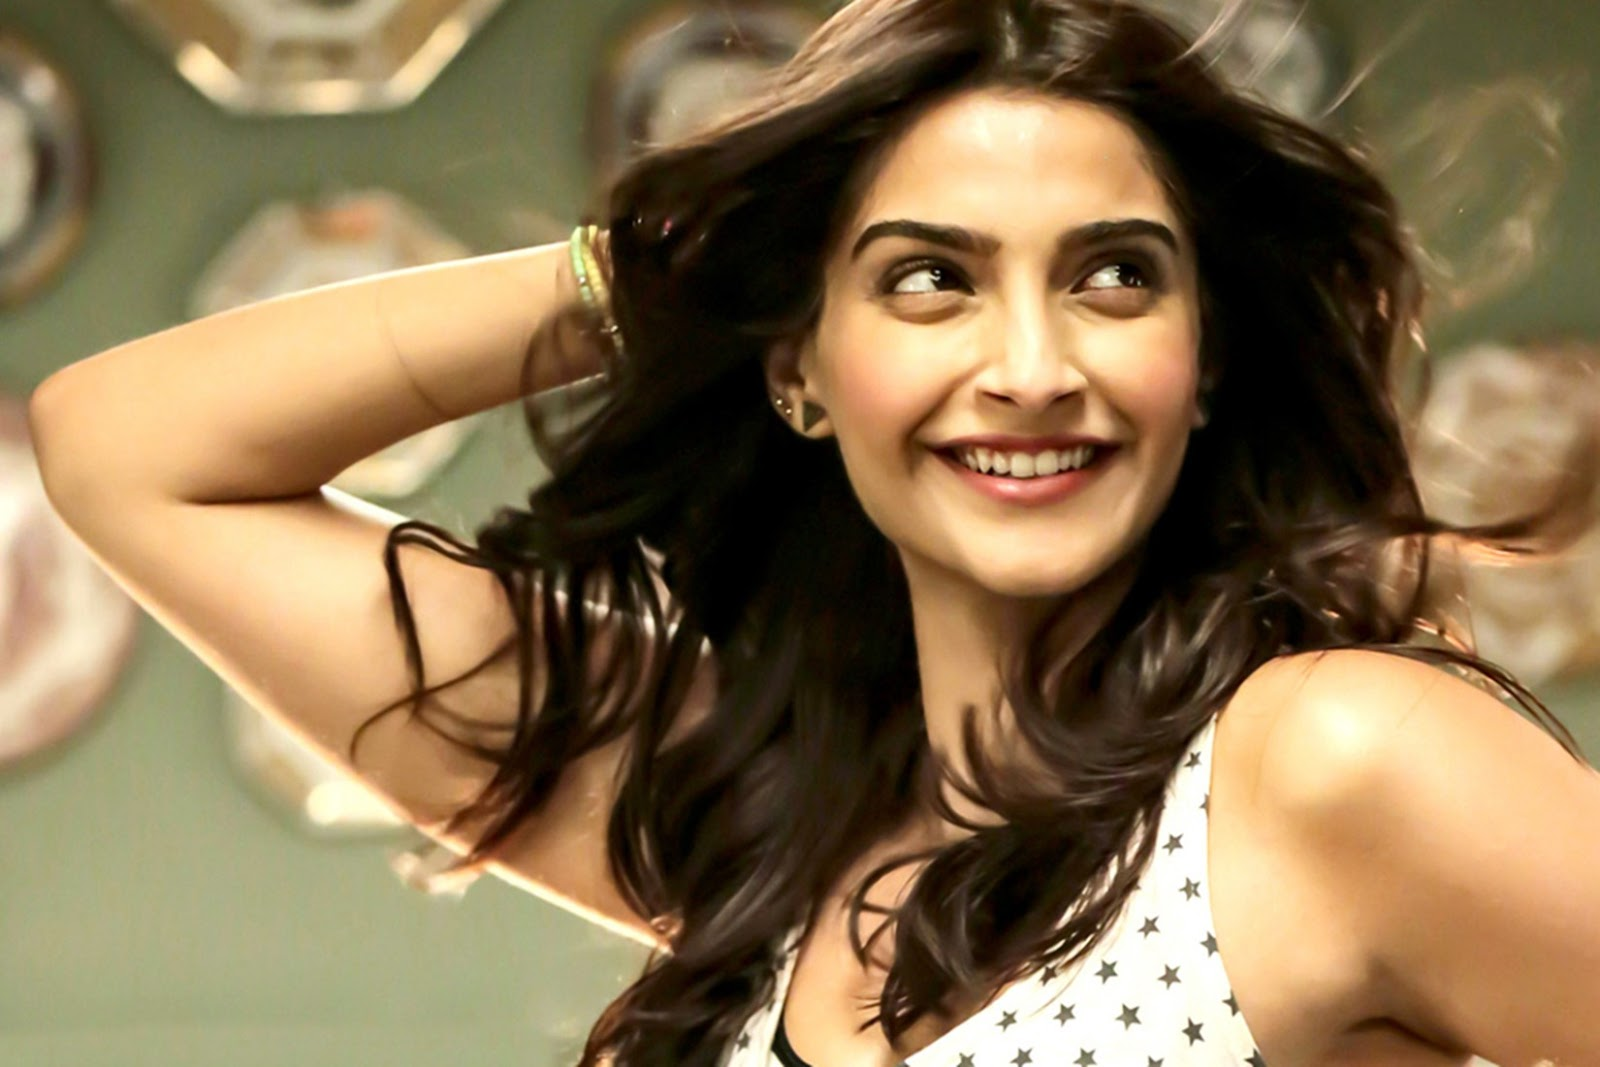 50 sonam kapoor hd wallpaper new photos download - wallpaper hd images